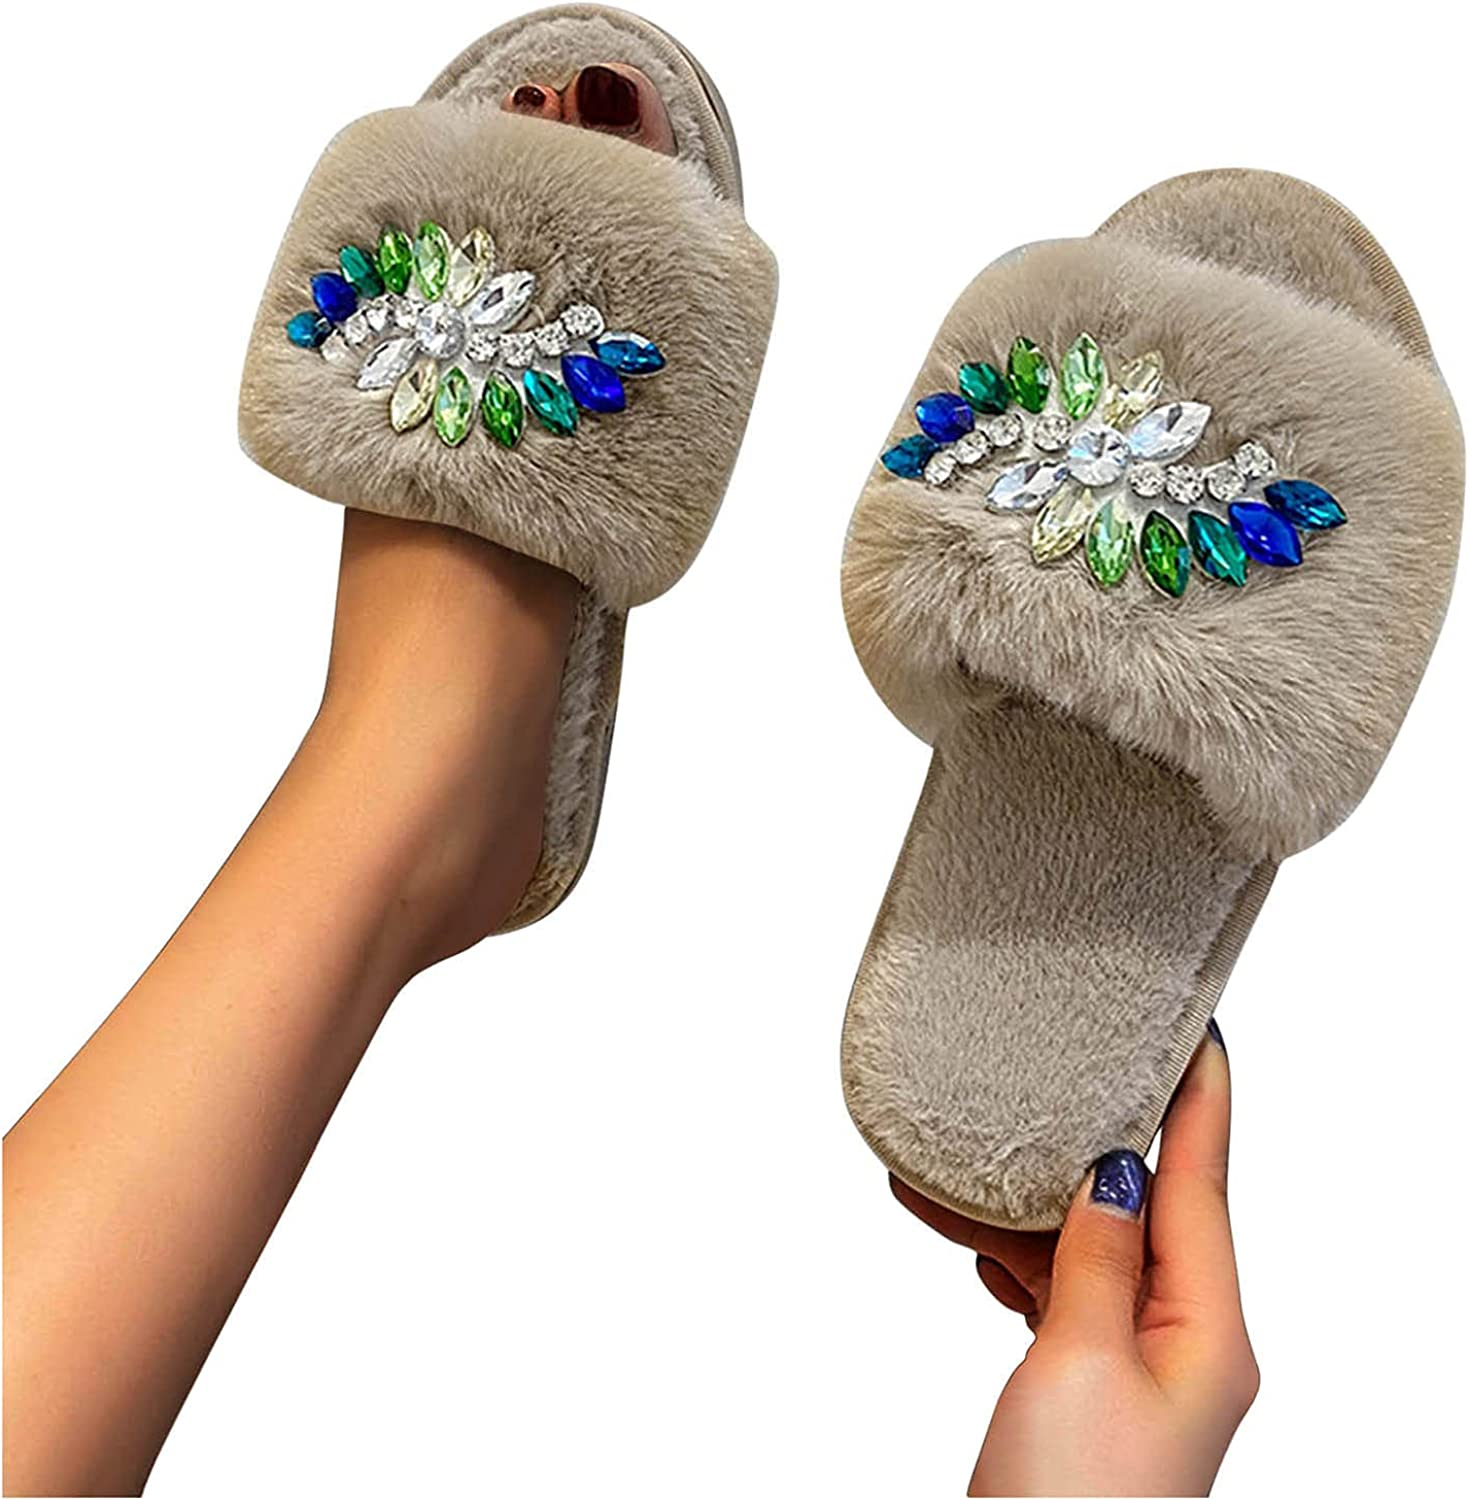 Memphis Mall Hunauoo Slippers for Women Home Rhinestone Thick Free Shipping New Furry